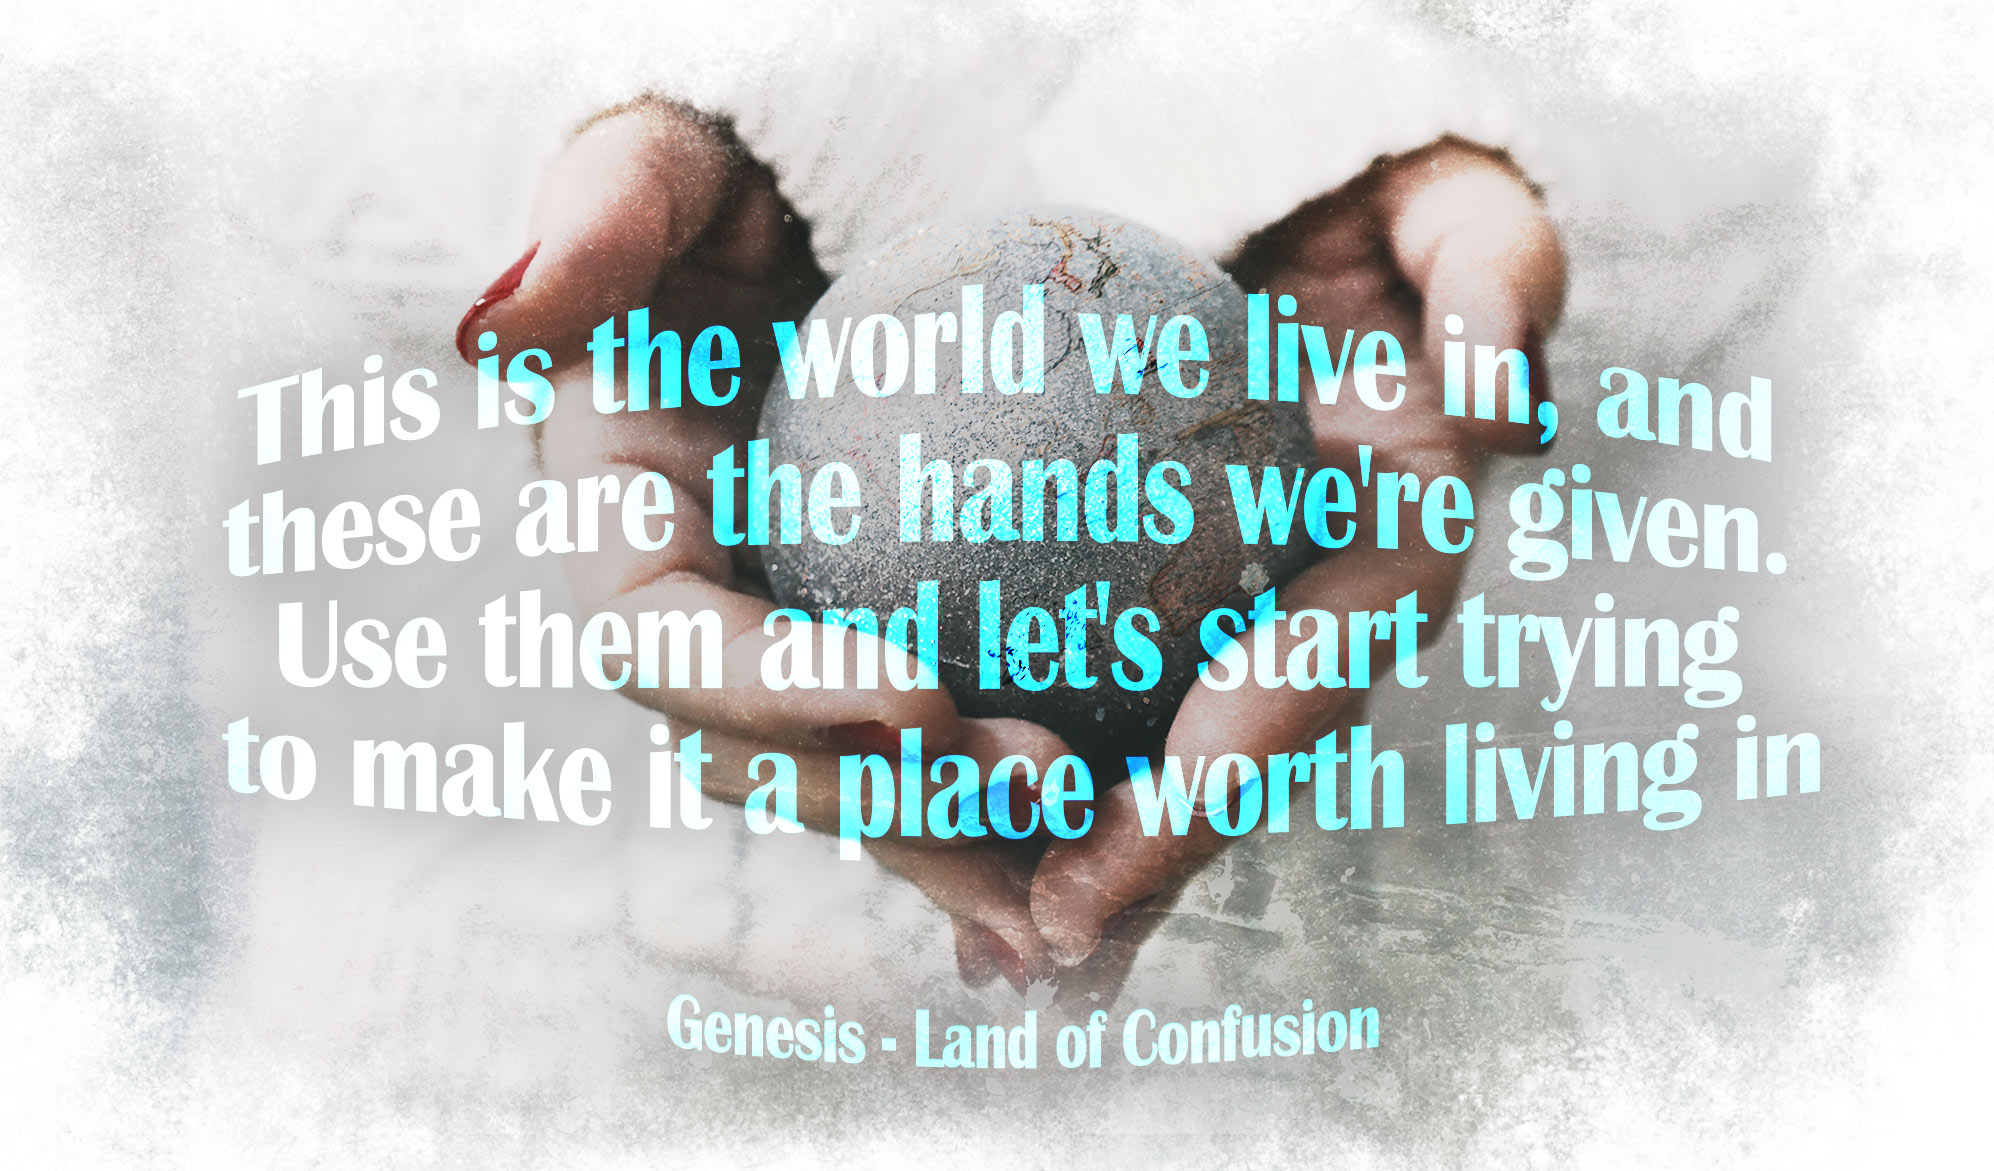 daily inspirational quote image: 2 hands holding a sparkling earth